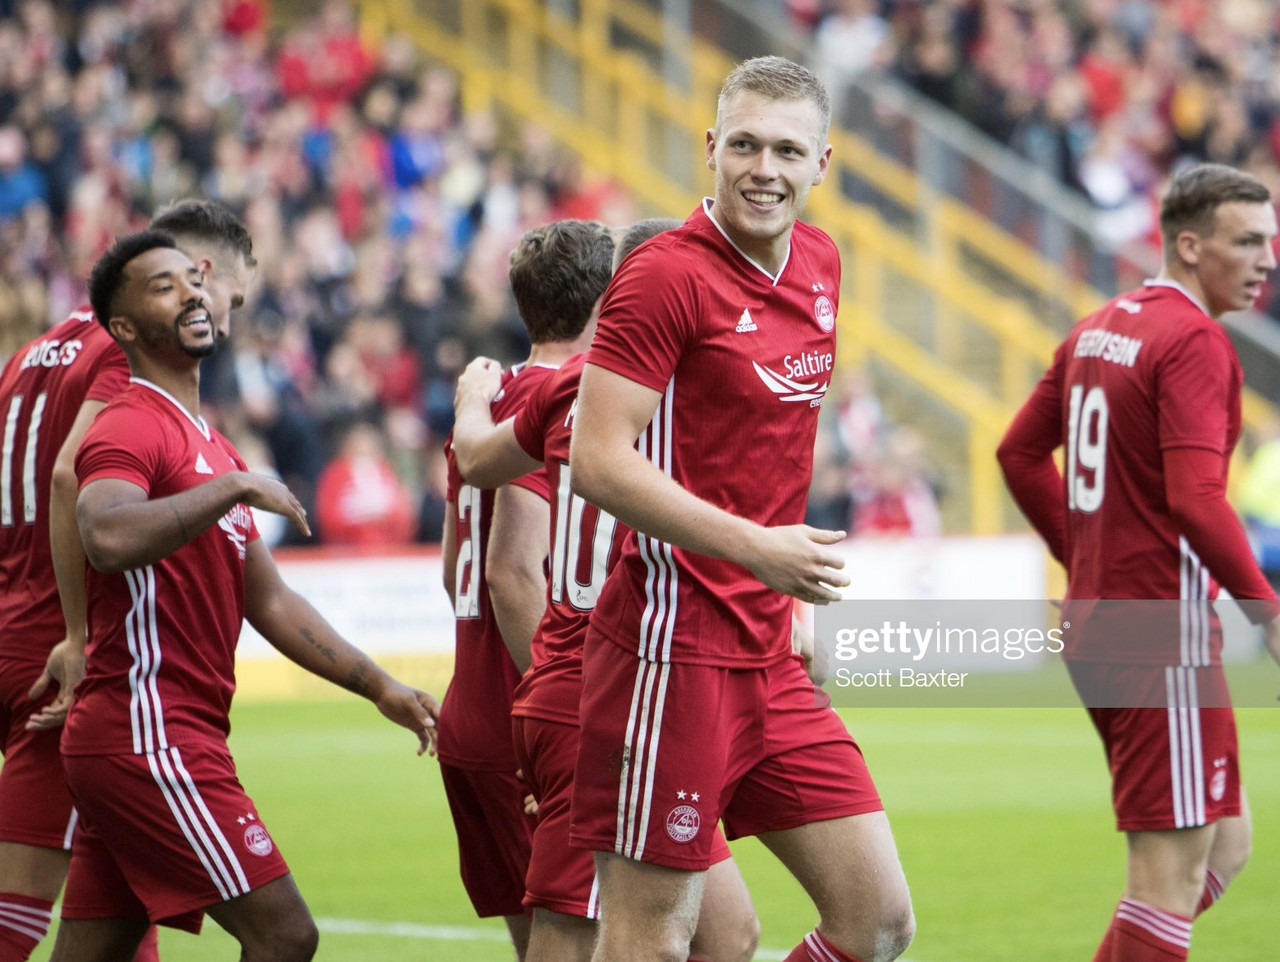 Rijeka vs Aberdeen Europa League Third Qualifying Round Preview